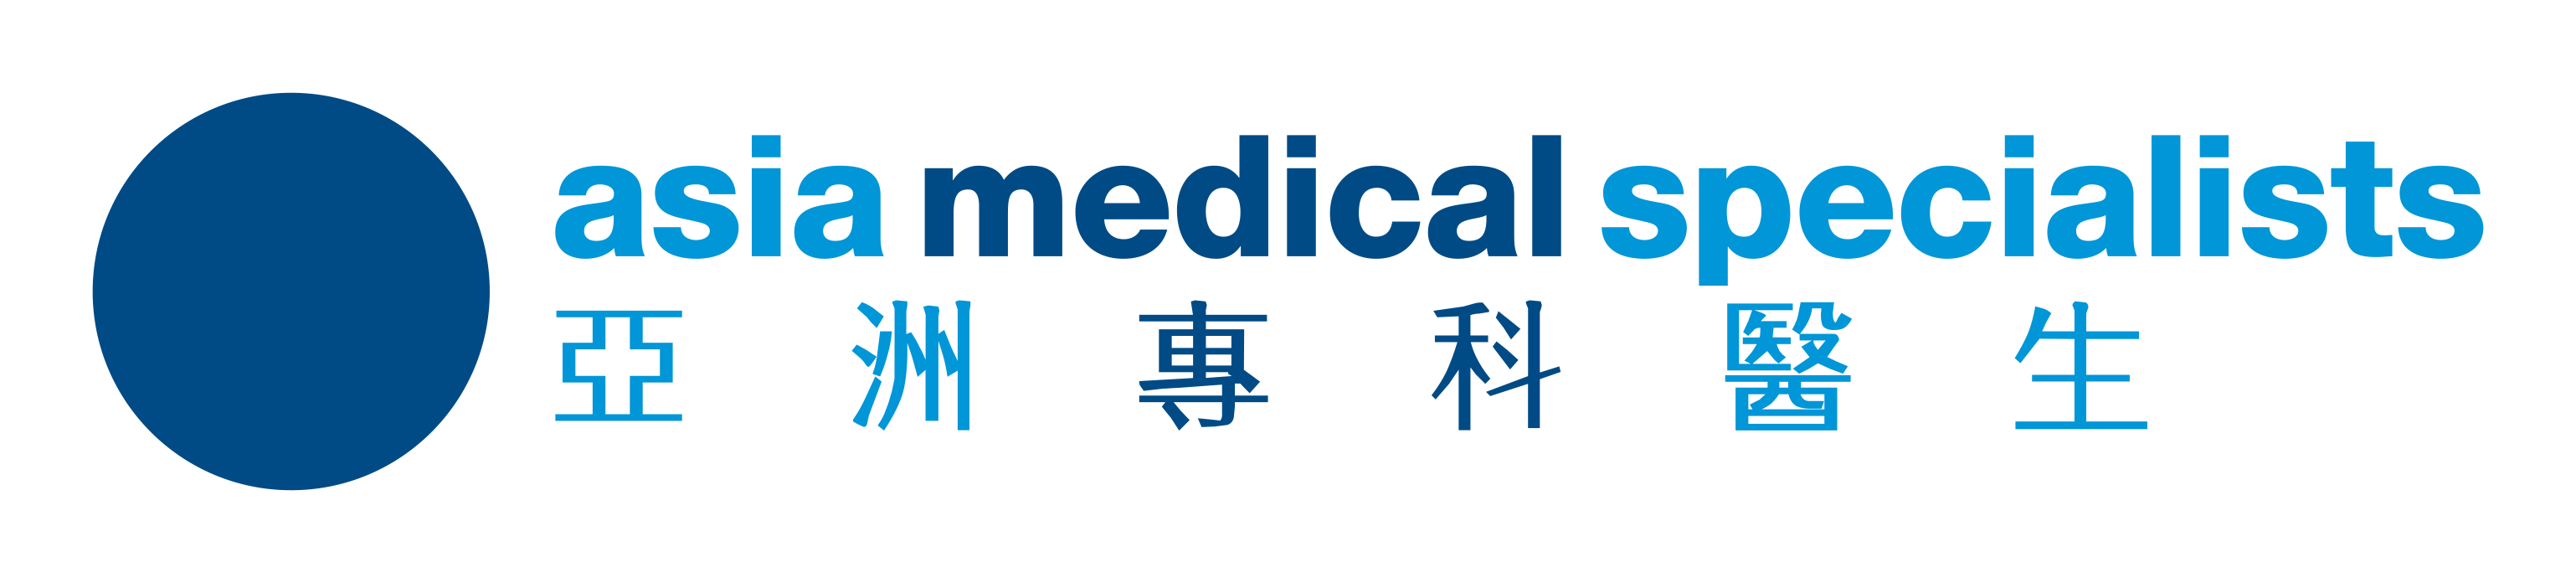 Asia Medical Specialists Ltd